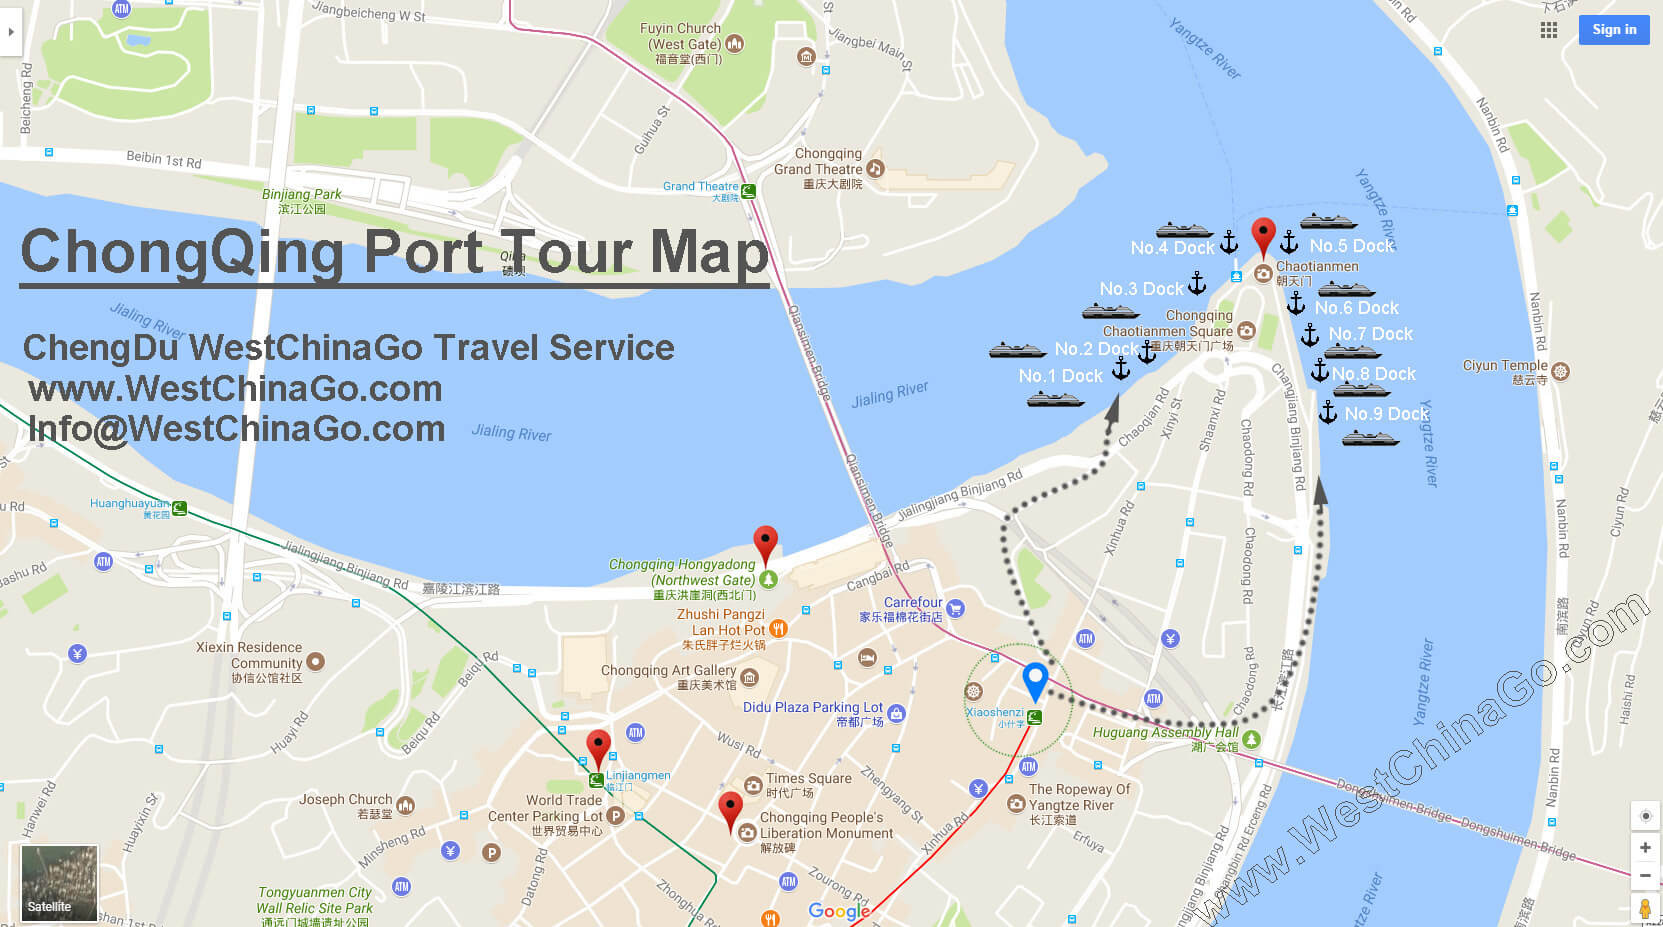 chongqing port tour map